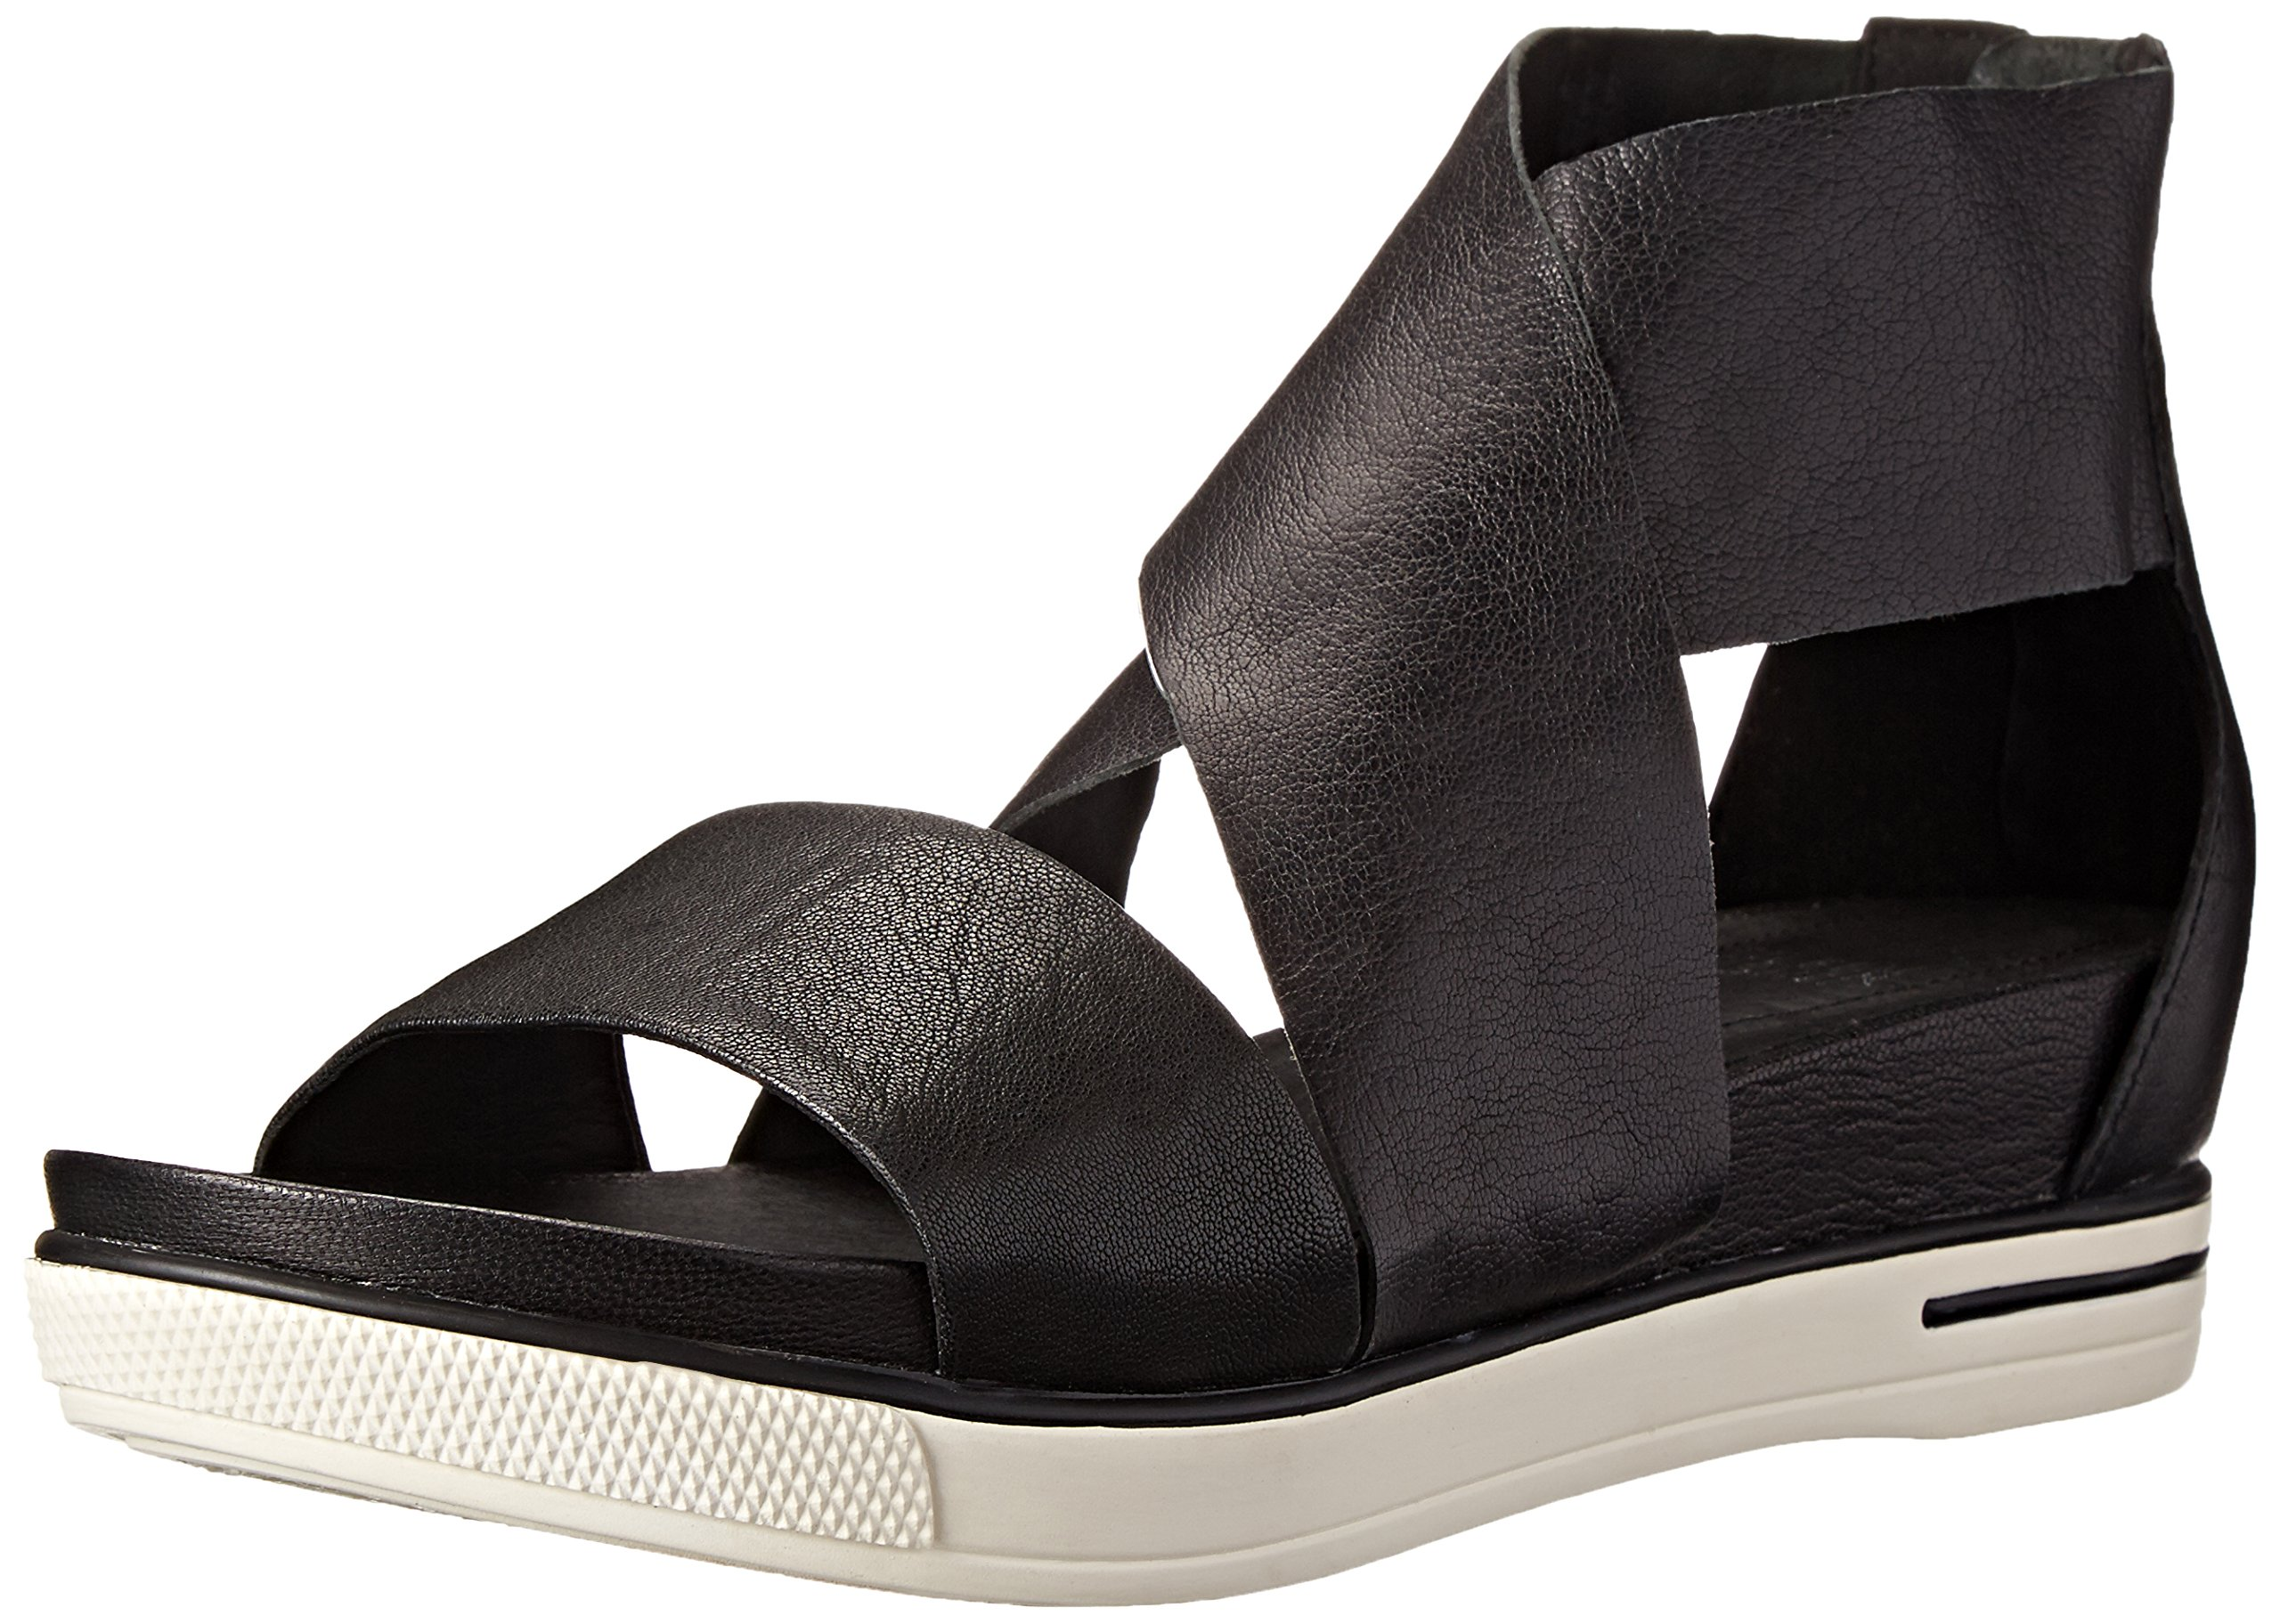 Eileen Fisher Women's Sport Sandal, Black Tumbled Leather, 10 M US